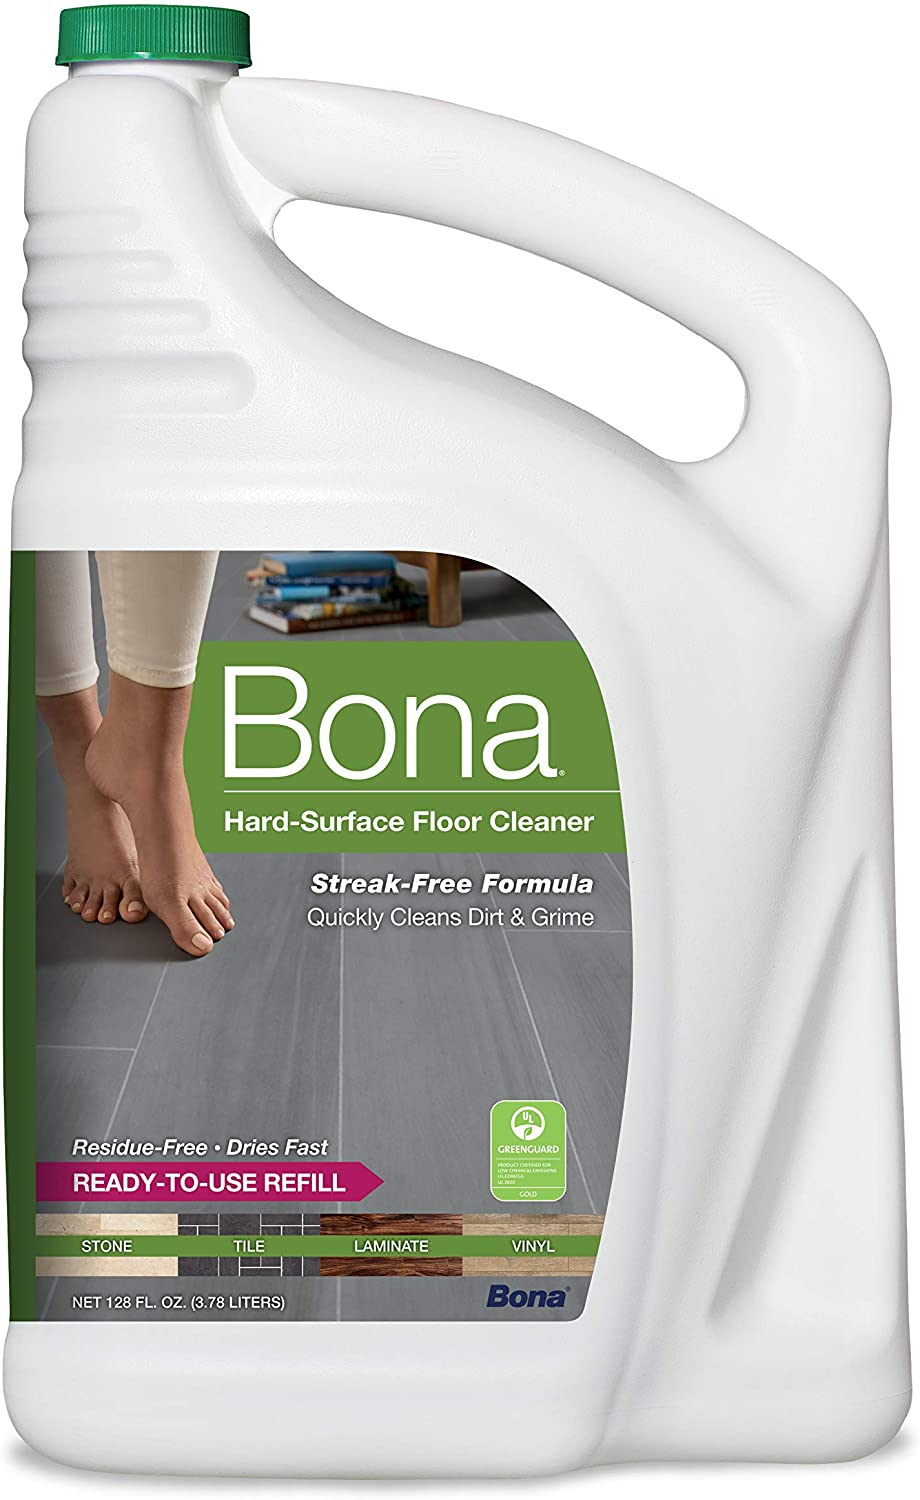 Bona Hard-Surface Clear Floor Cleaner Refill Mopping Solution